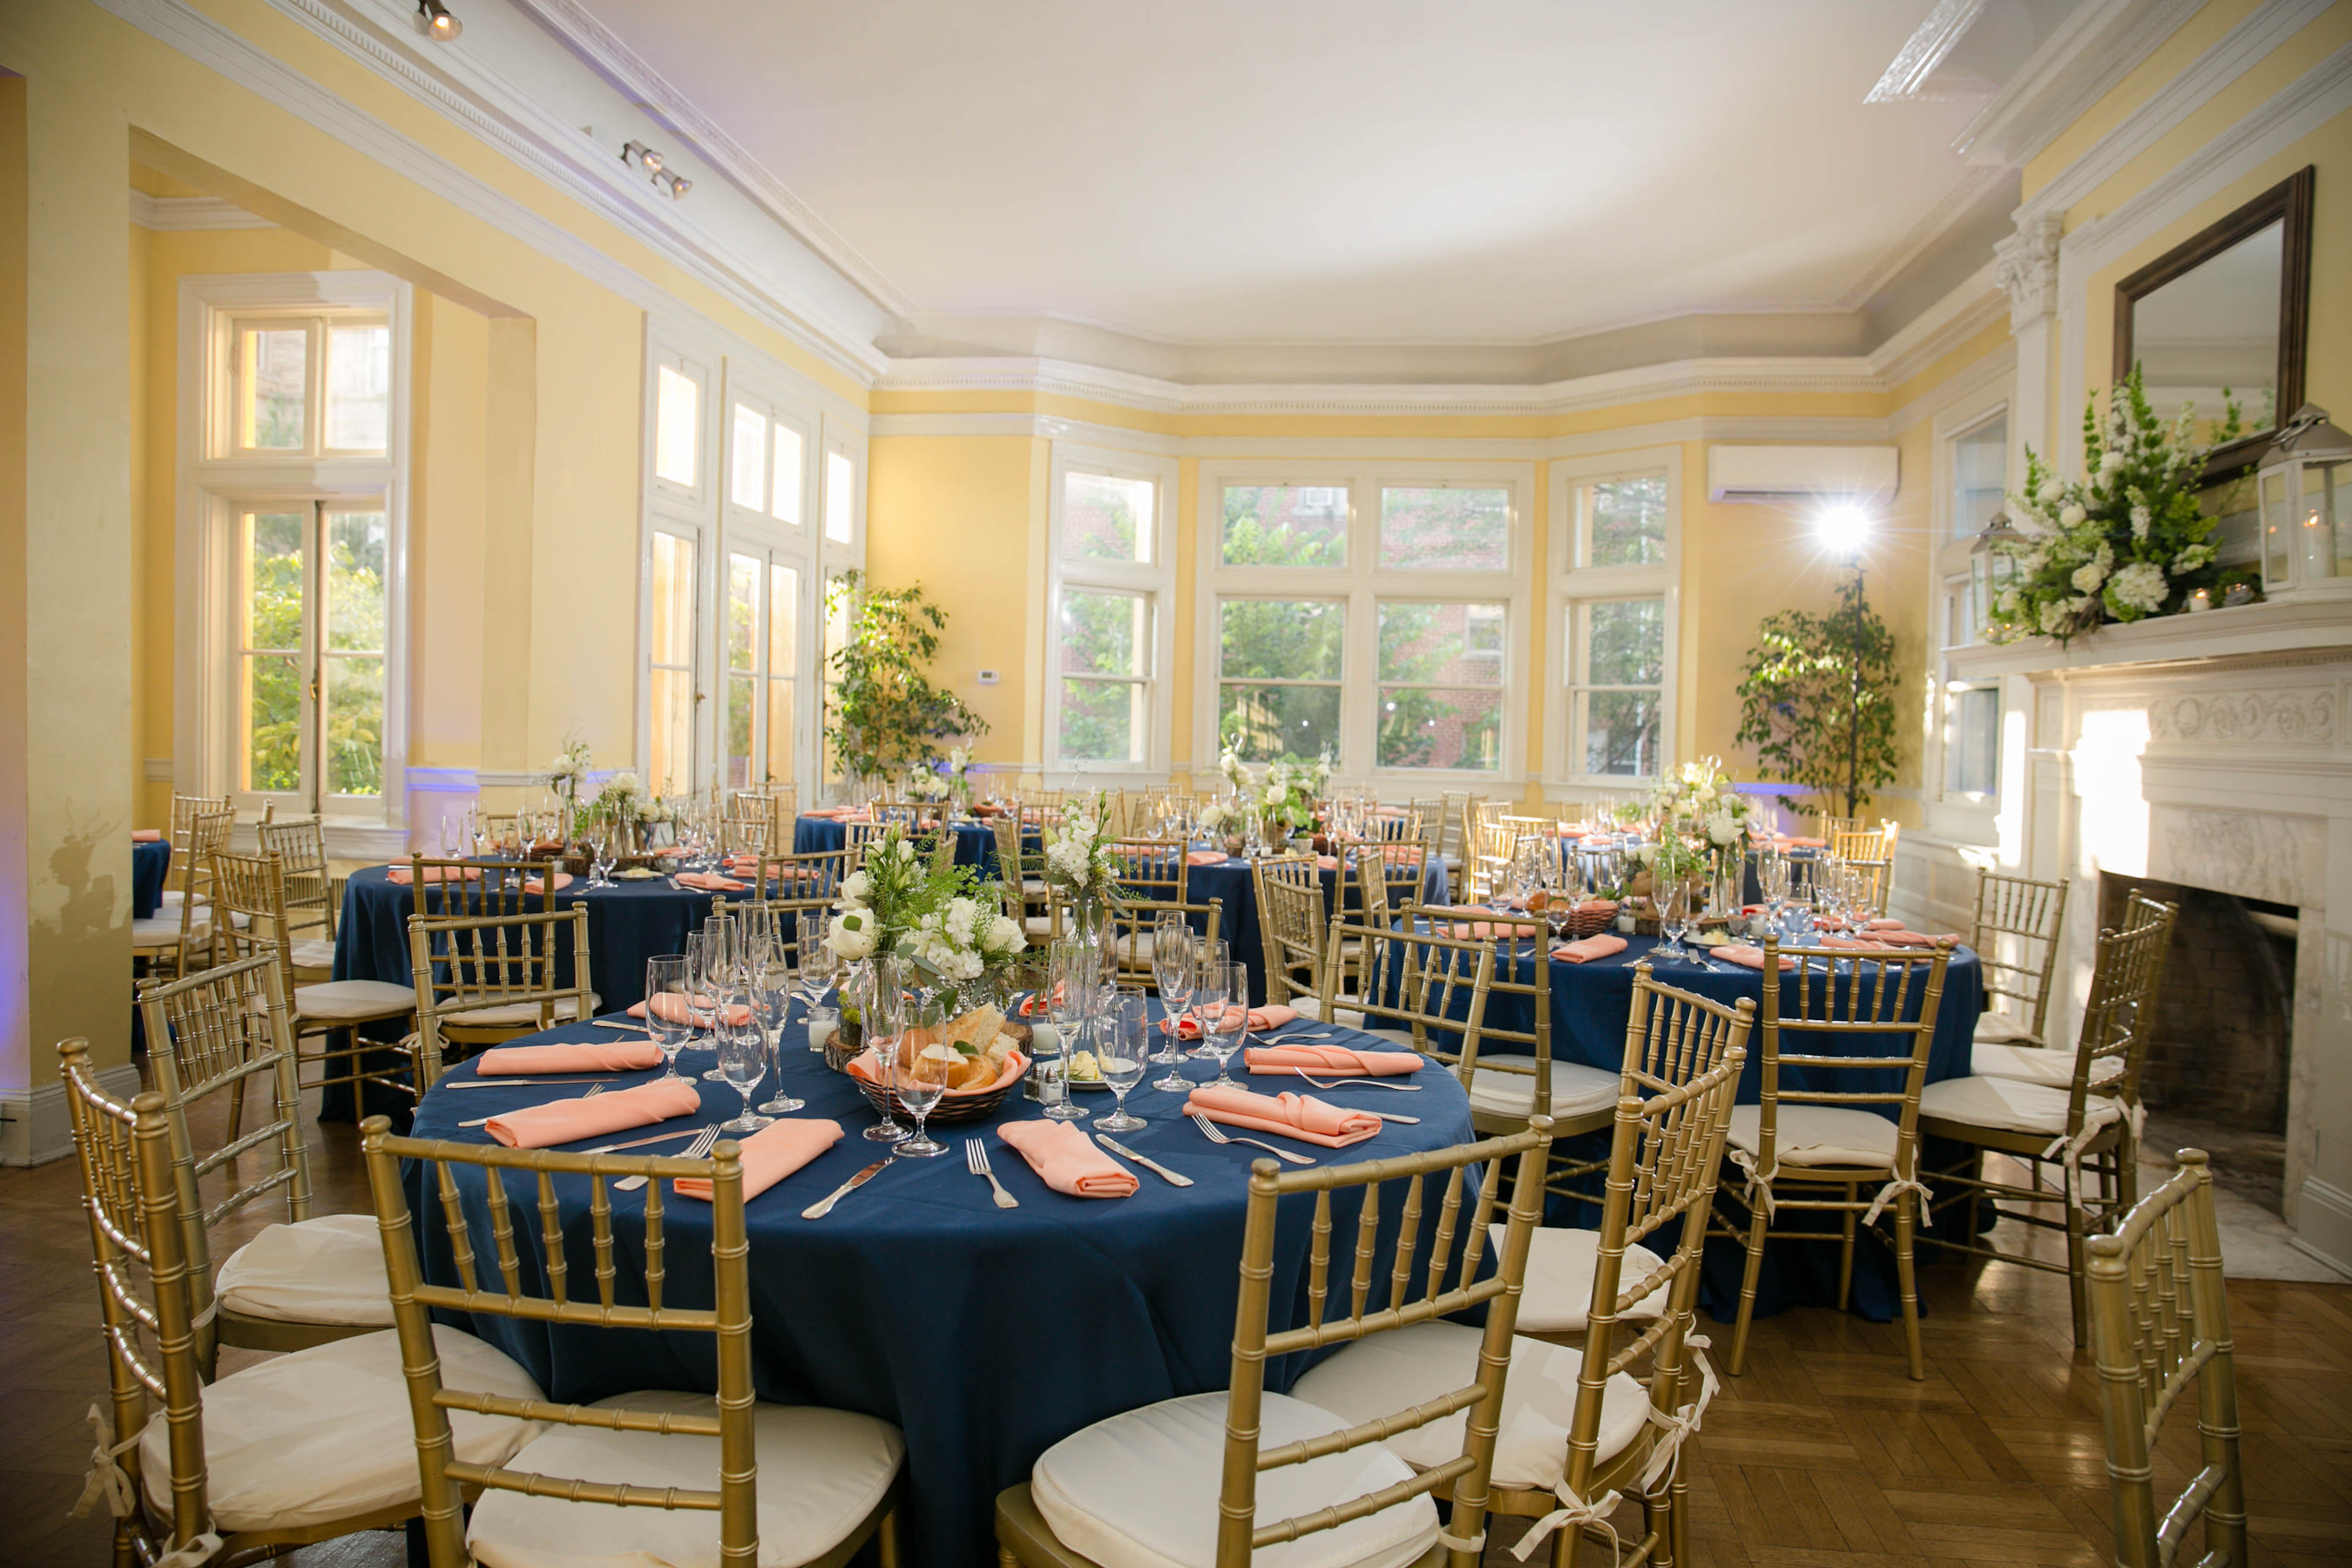 Weddings at Josphine Butler Parks Center